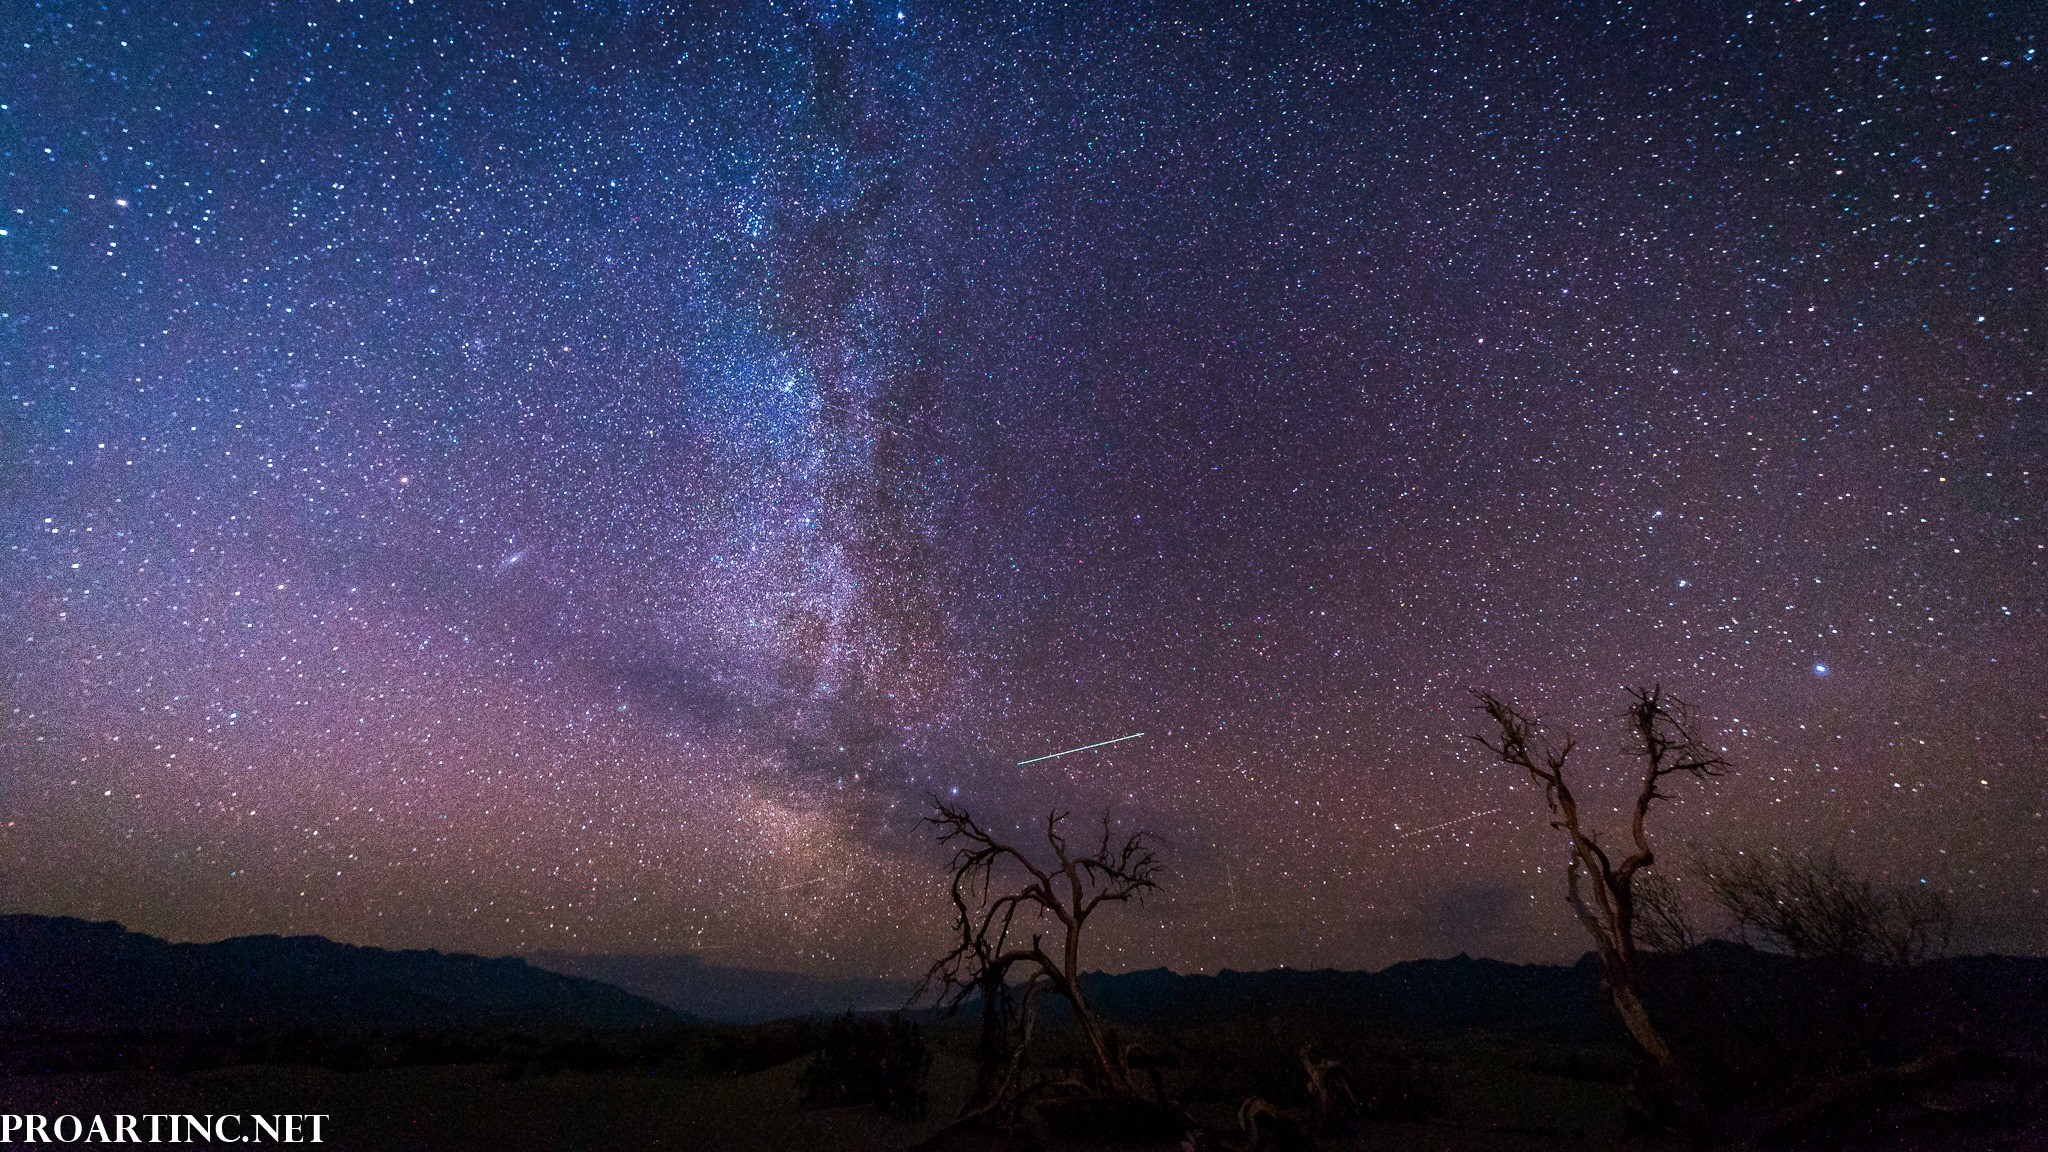 Milky Way at Mesquite Flat Sand Dunes, Death Valley National Park 8K/4K  Screensavers/Wallpapers